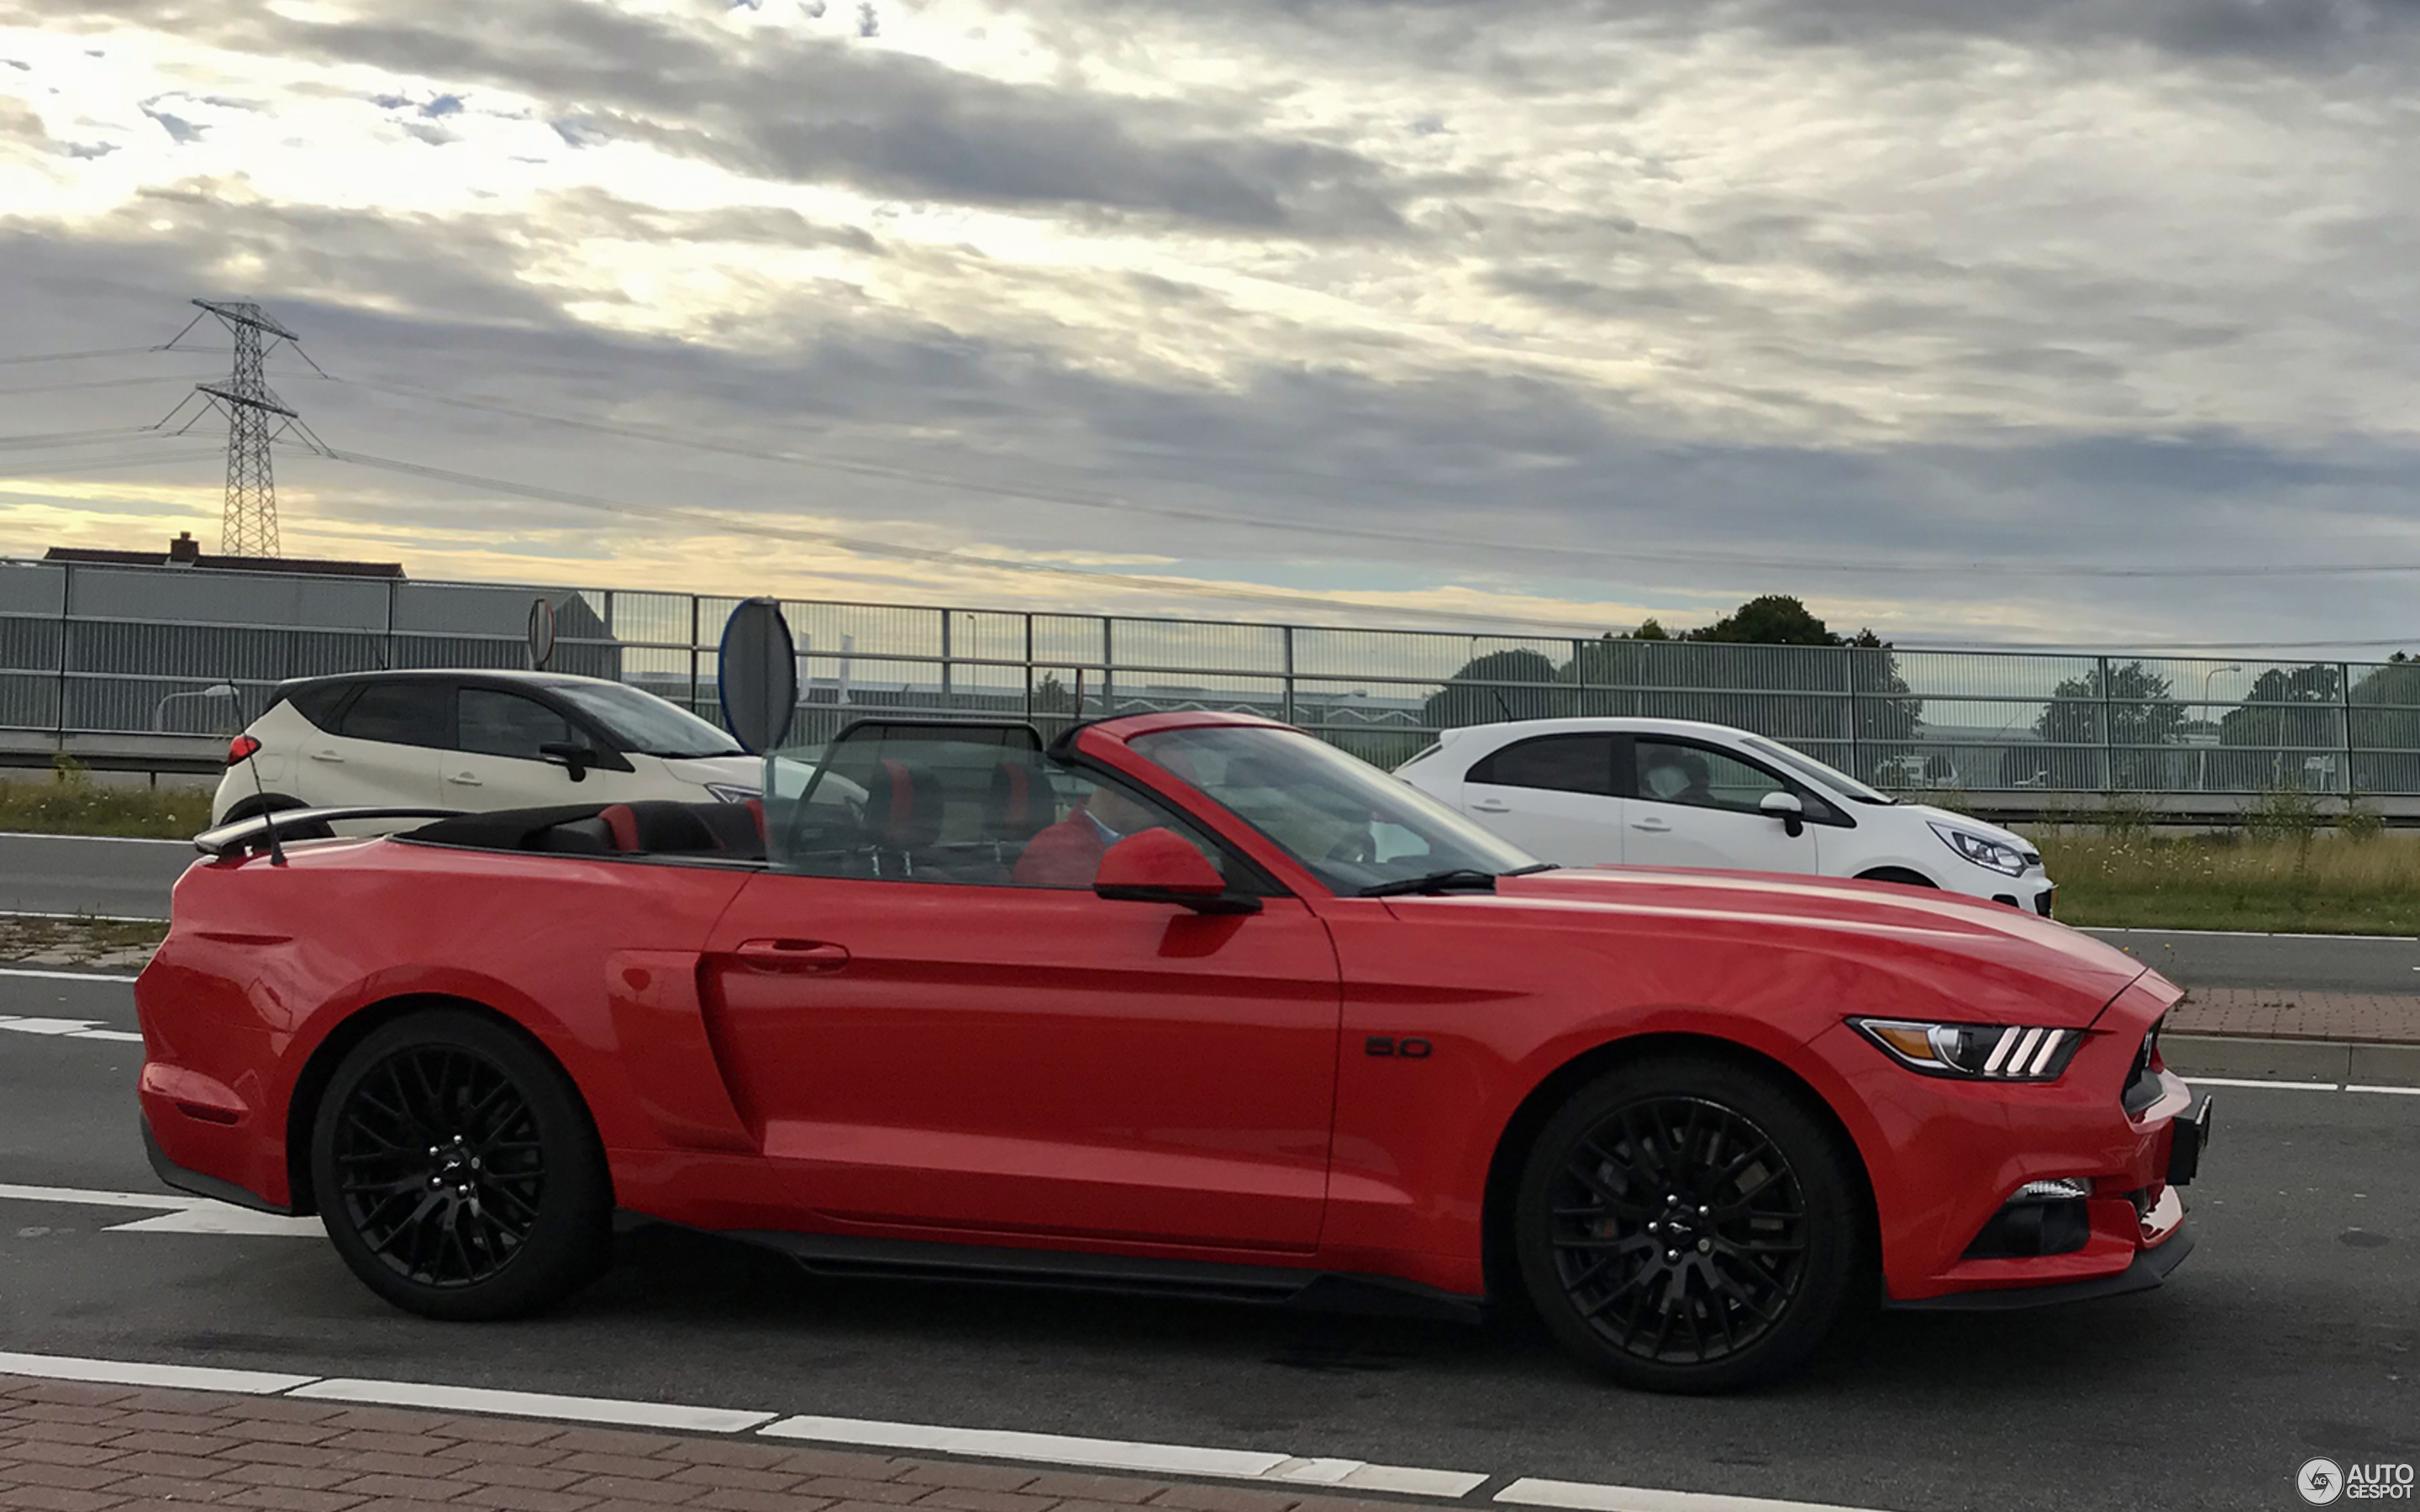 Ford Mustang Gt Convertible 2015 29 March 2019 Autogespot